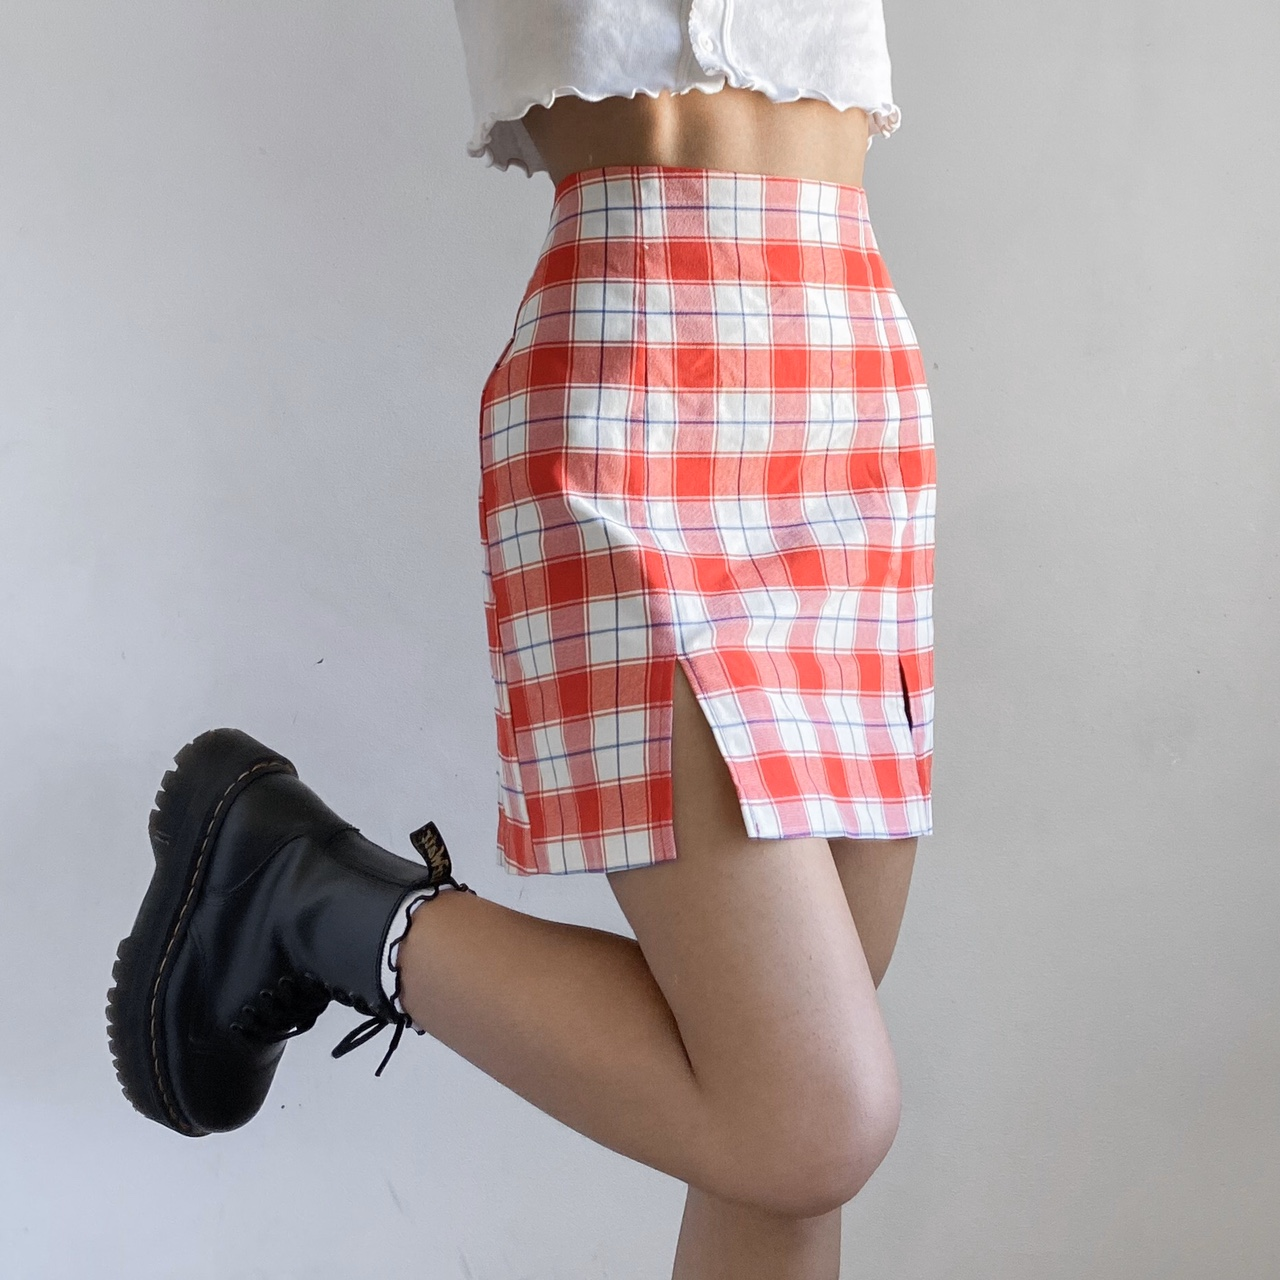 Urban Outfitters - Jackie Red Plaid Mini Skirt ✨